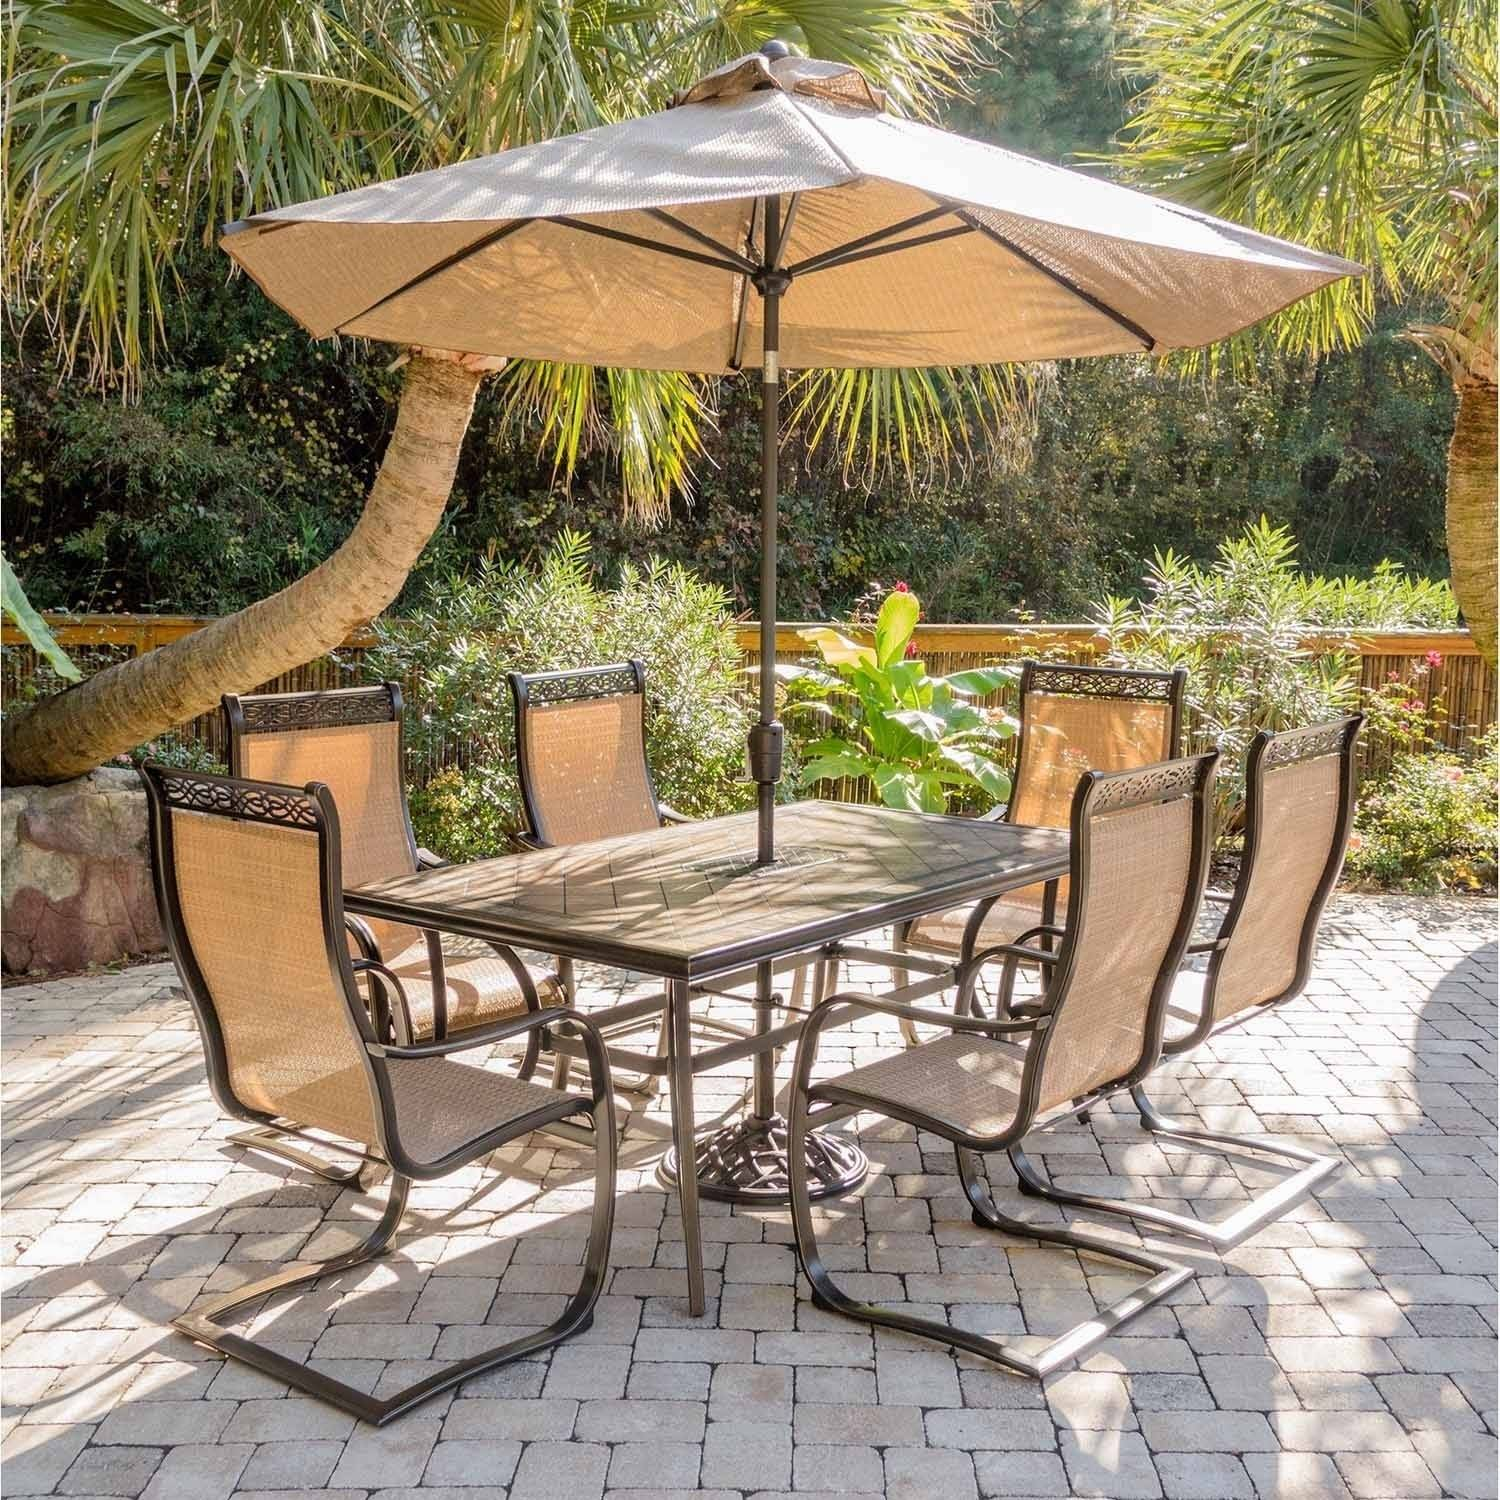 Hanover Outdoor Monaco 7-Piece Tile-Top Dining Set with Sling C-Spring Chairs and Umbrella w/Stand in Cedar